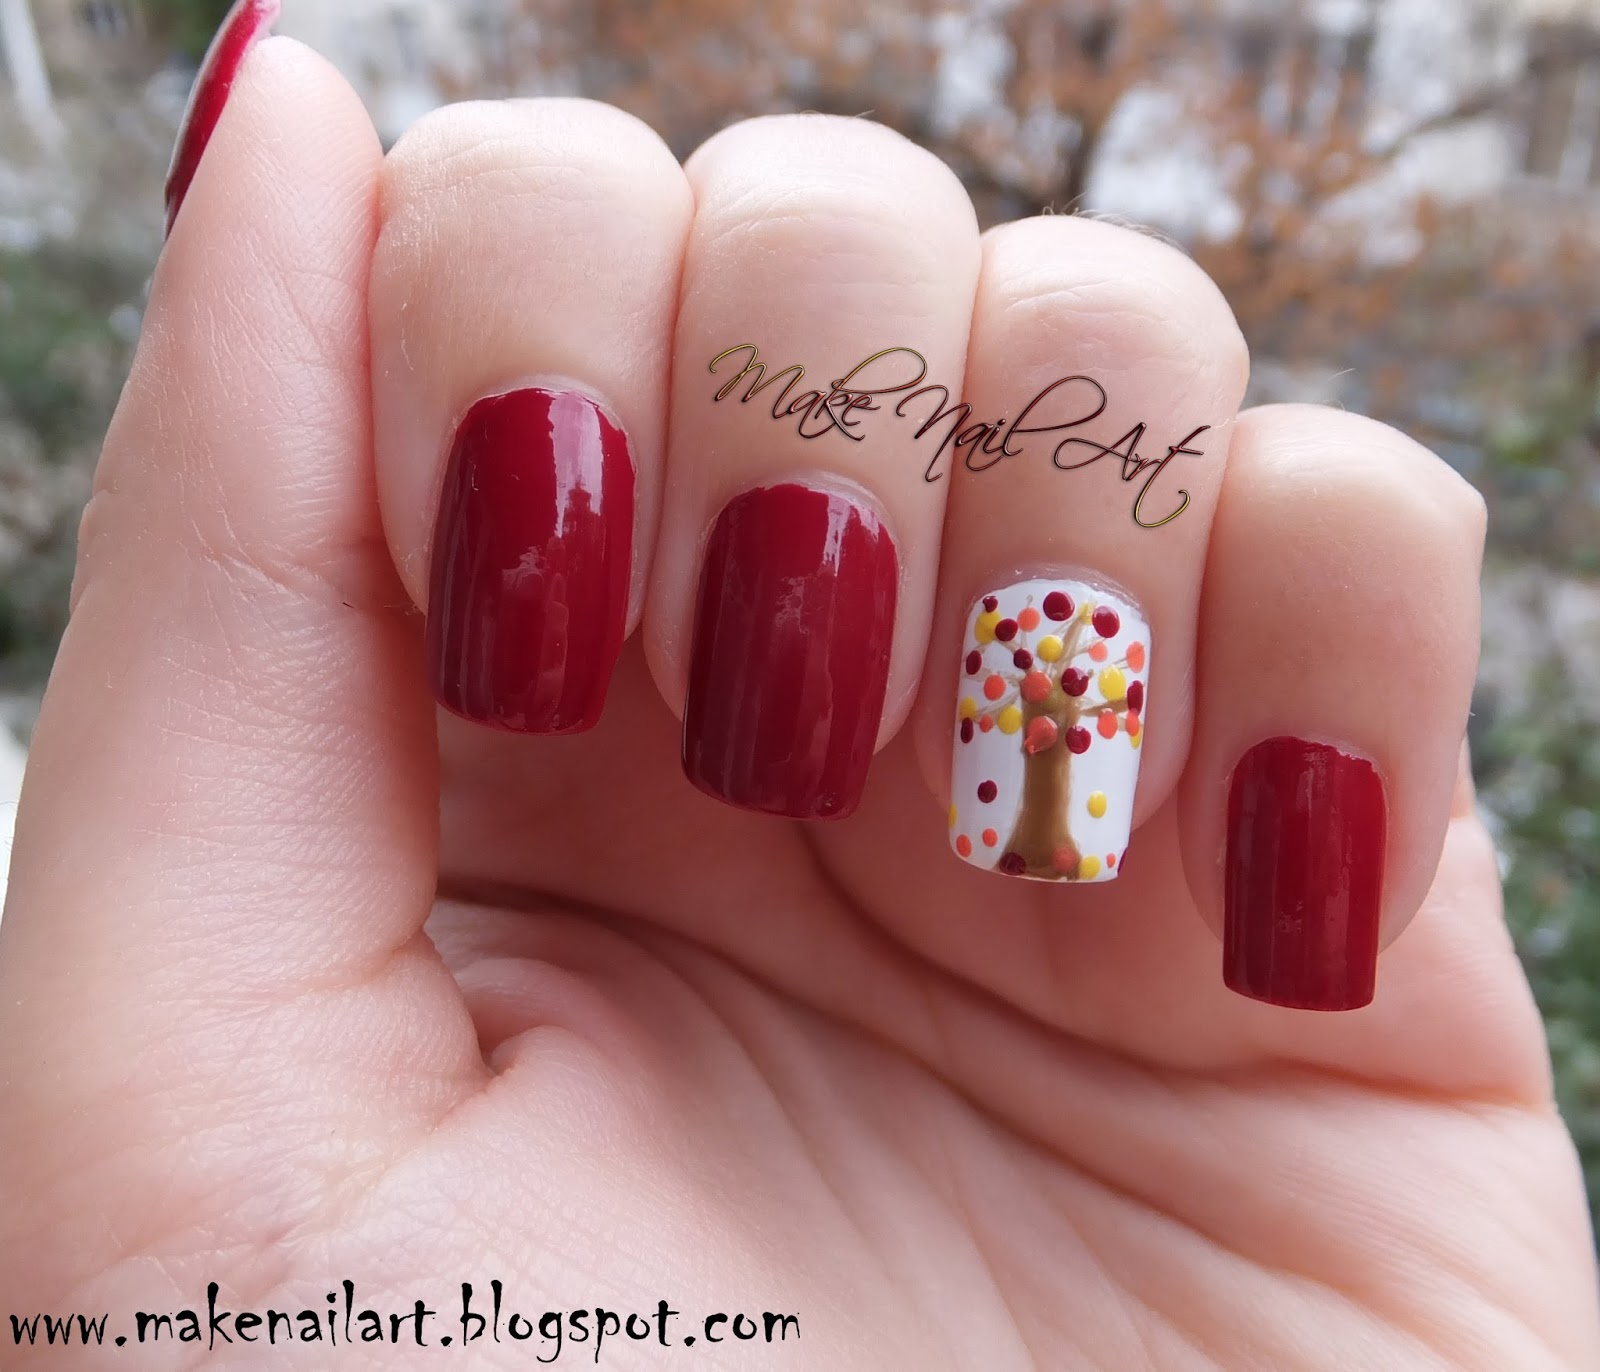 Make Nail Art: October 2015